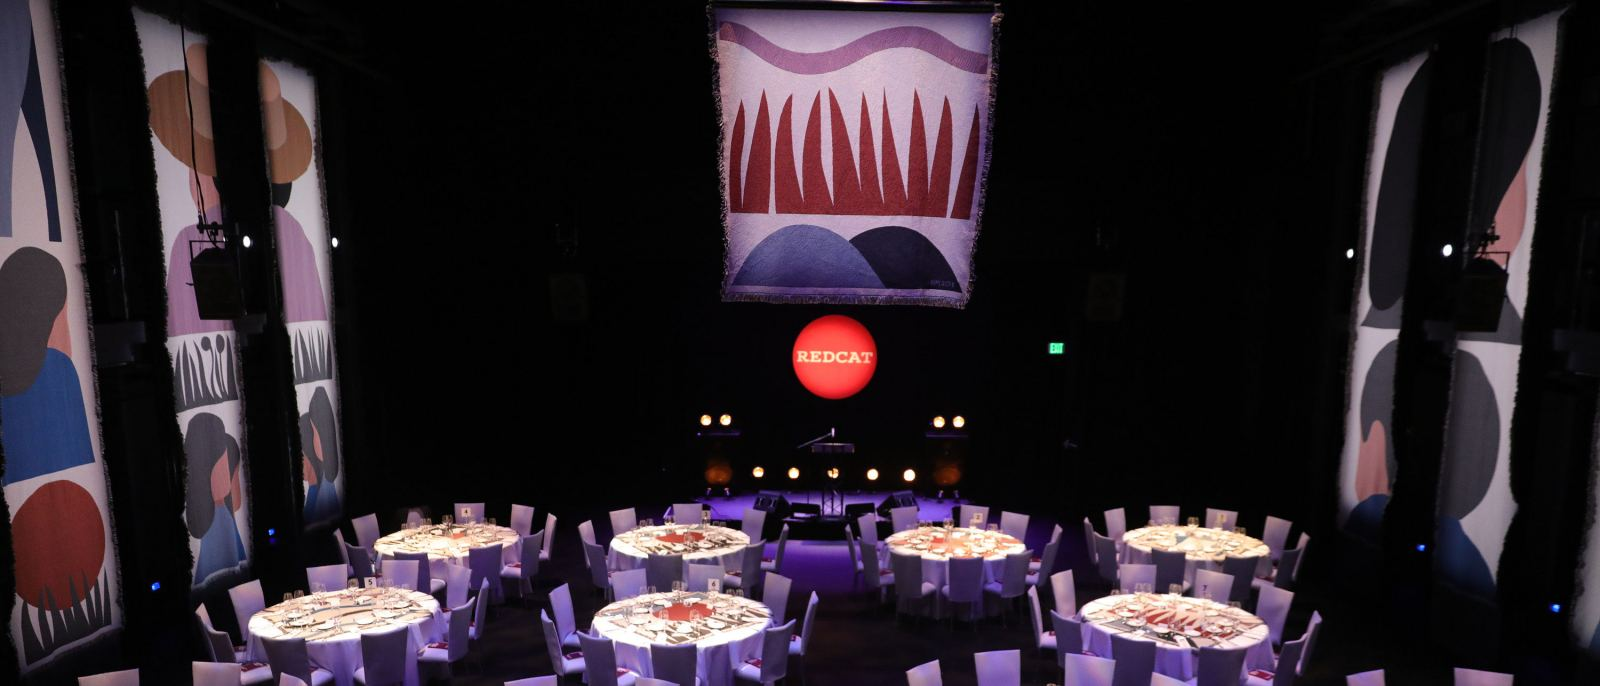 The 2018 REDCAT Gala, with custom woven art by artist Geoff McFetridge | Photo: REDCAT